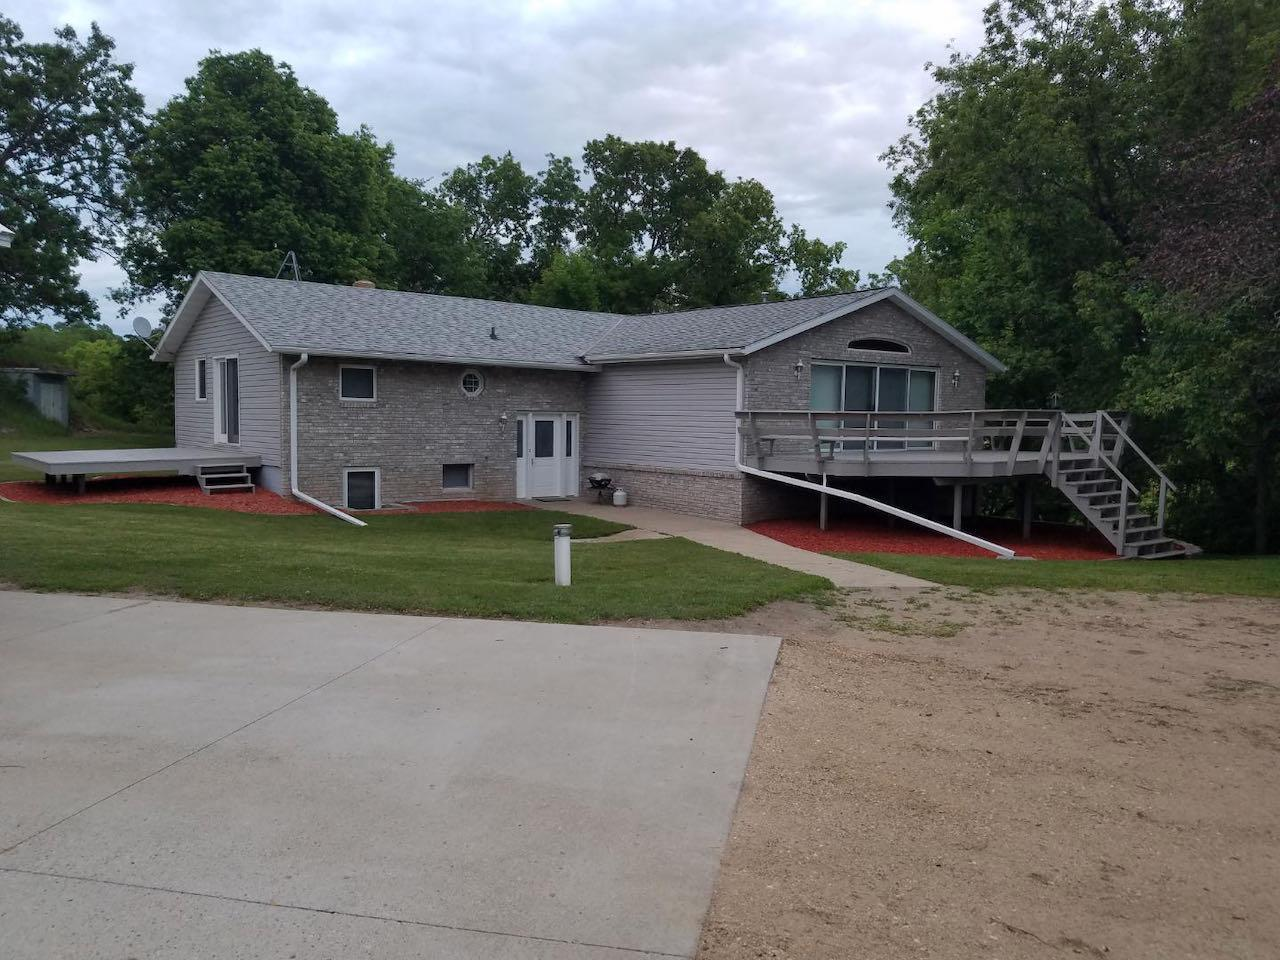 Fantastic home on 6.17 acres. Outbuildings include a 34x40 triple stall oversized garage that is core filled and frost footings, 10' sidewalls. A quonset is 24x32.  A 48x32 building that is partially heated and wall air conditioner. With above storage mezzanine. The workshop measures 24X32, garage area is 24x32. Underground storage building that is 12x30, great area to build a smoker, create and store your own beer/wine. Home features 3 bedrooms, a massive living/great room, overlooking a gorgeous wildlife area. The second living/family room overlooks the front of the home and has a gas fireplace. Both of these are on the main floor of the home. The third living/Family room is in the basement, great place to send the kids for their get togethers, video games and/or movie nights. Home also has the great feature that the main floor has the master bedroom and two bedrooms in the lower level. Huge storage area that easily could convert to bathroom.